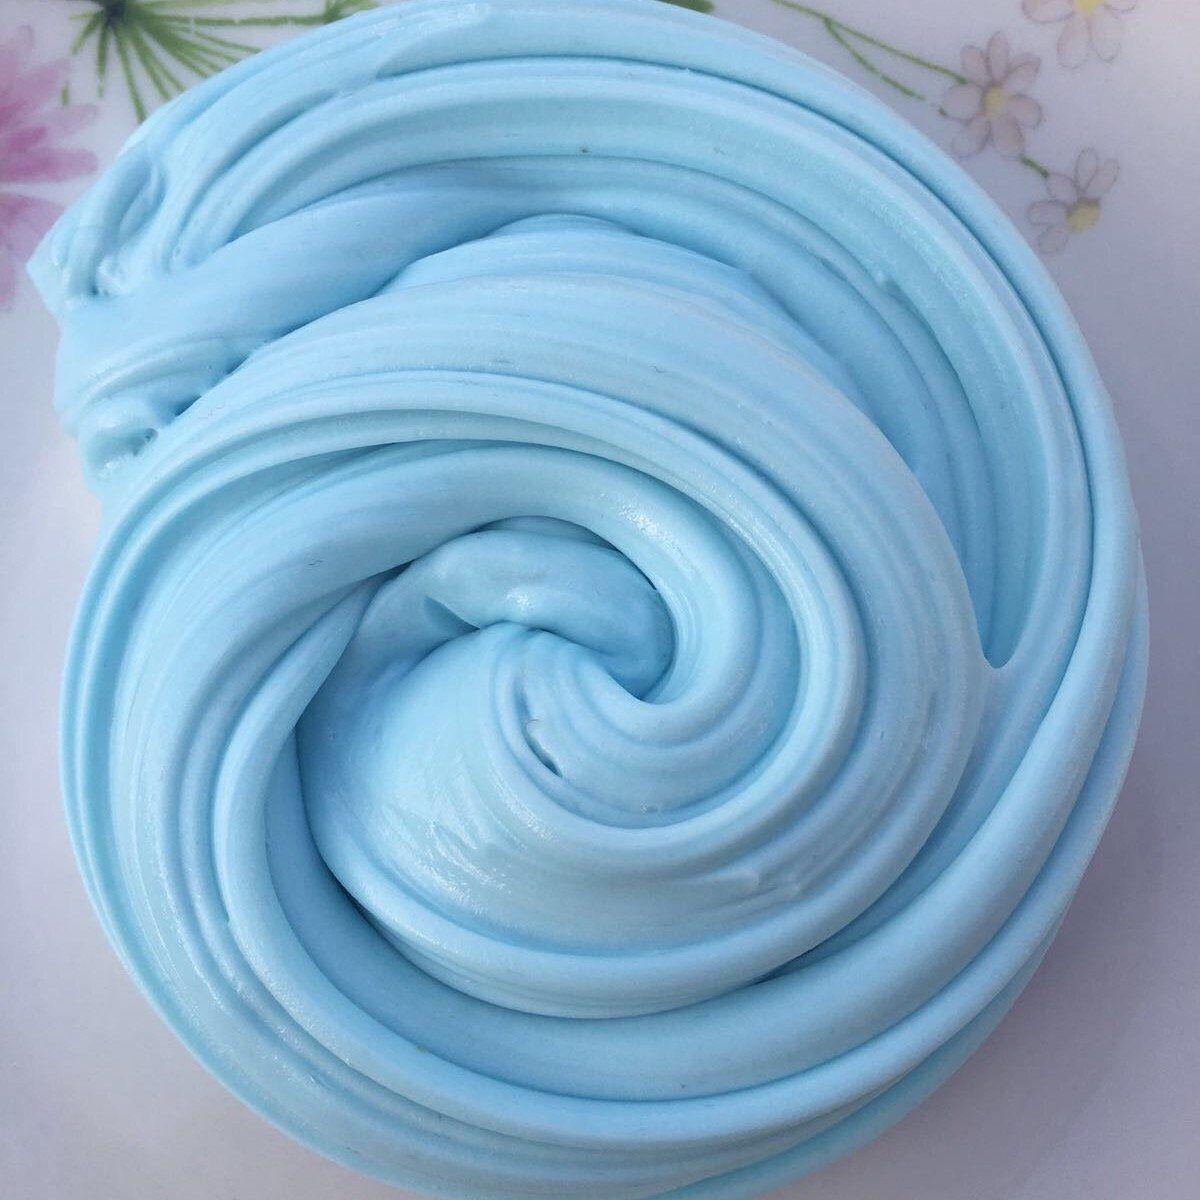 (50g, BABY BLUE) FLUFFY SLIME FAT STRETCHY BUTTER FLOAM NON TOXIC SAFE AND WASHABLE PUTTY STRESS RELIEF SENSORY TOY ADHT ASMR NO BORAX DELICIOUS BUBBLEGUM FRAGRANCE! VAGTZEMGKIN